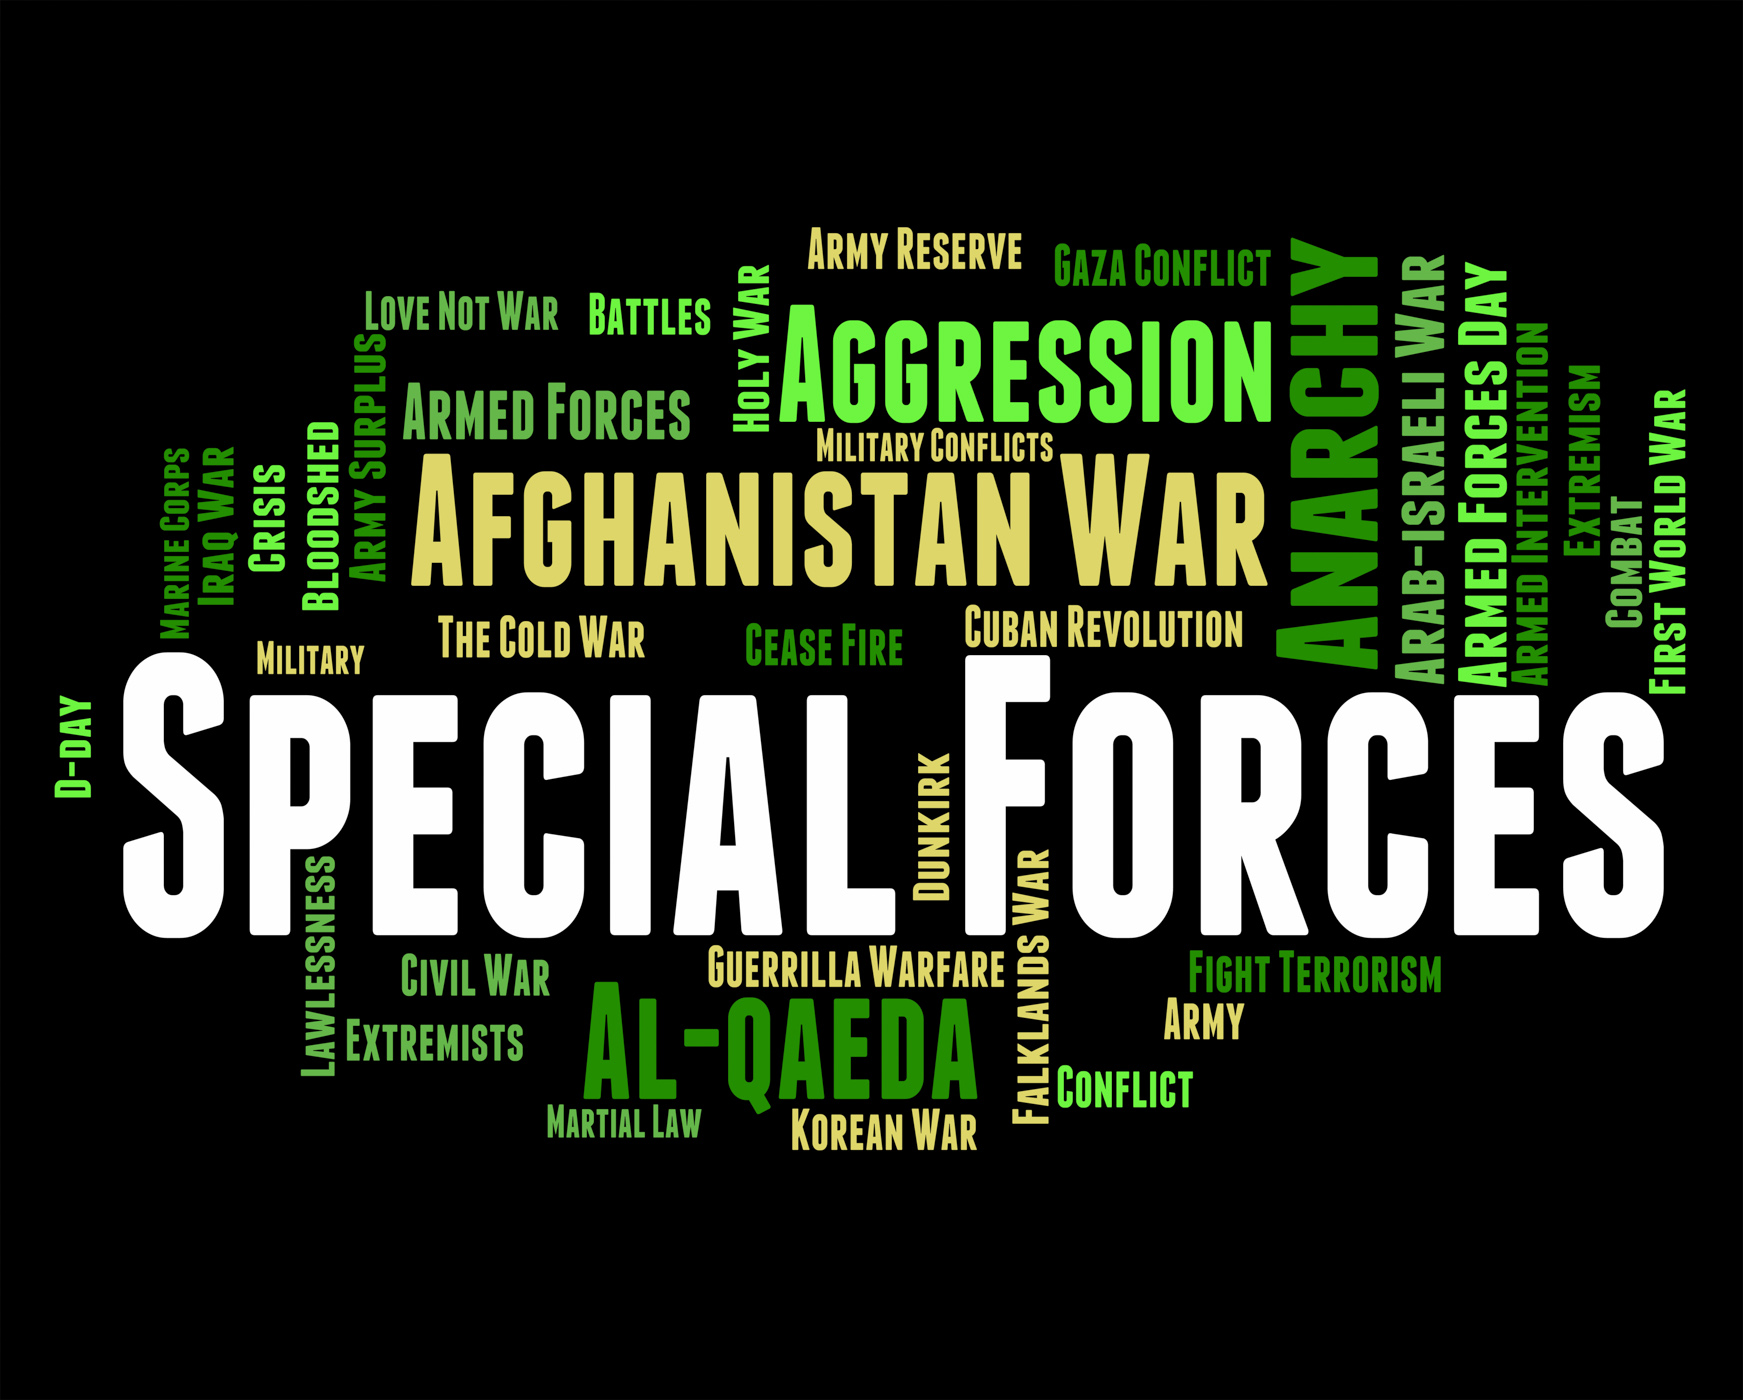 Special forces means military action and covert photo